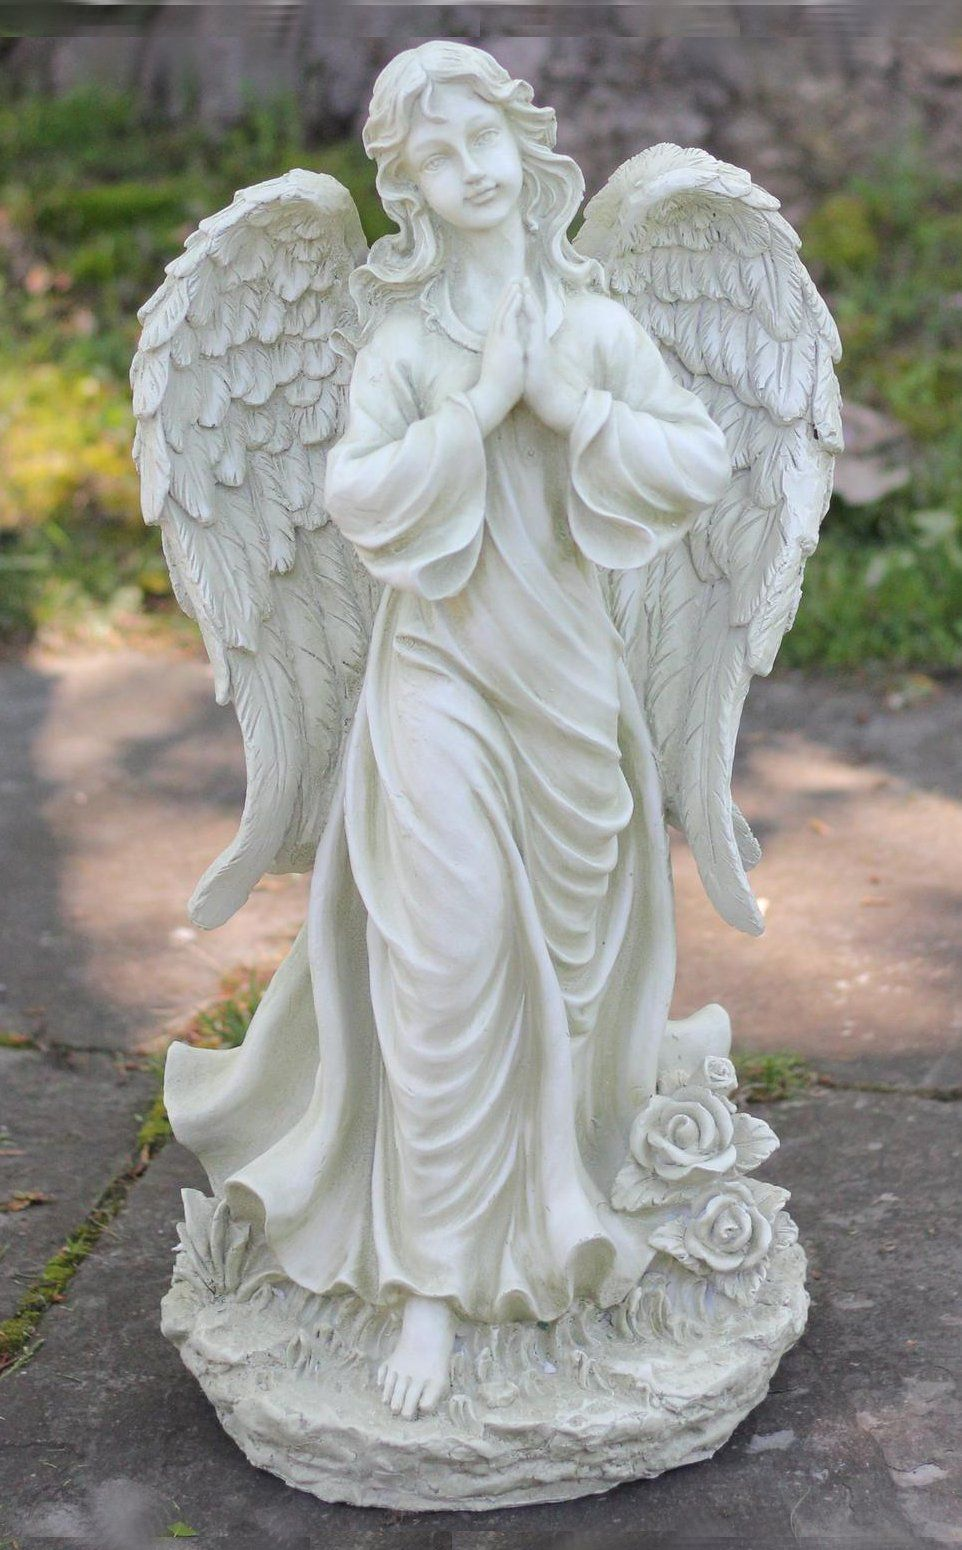 Pin By Ashmita Gautam On Acting Design Ideas In 2020 With Images Angel Garden Statues Garden Angels Angel Statues